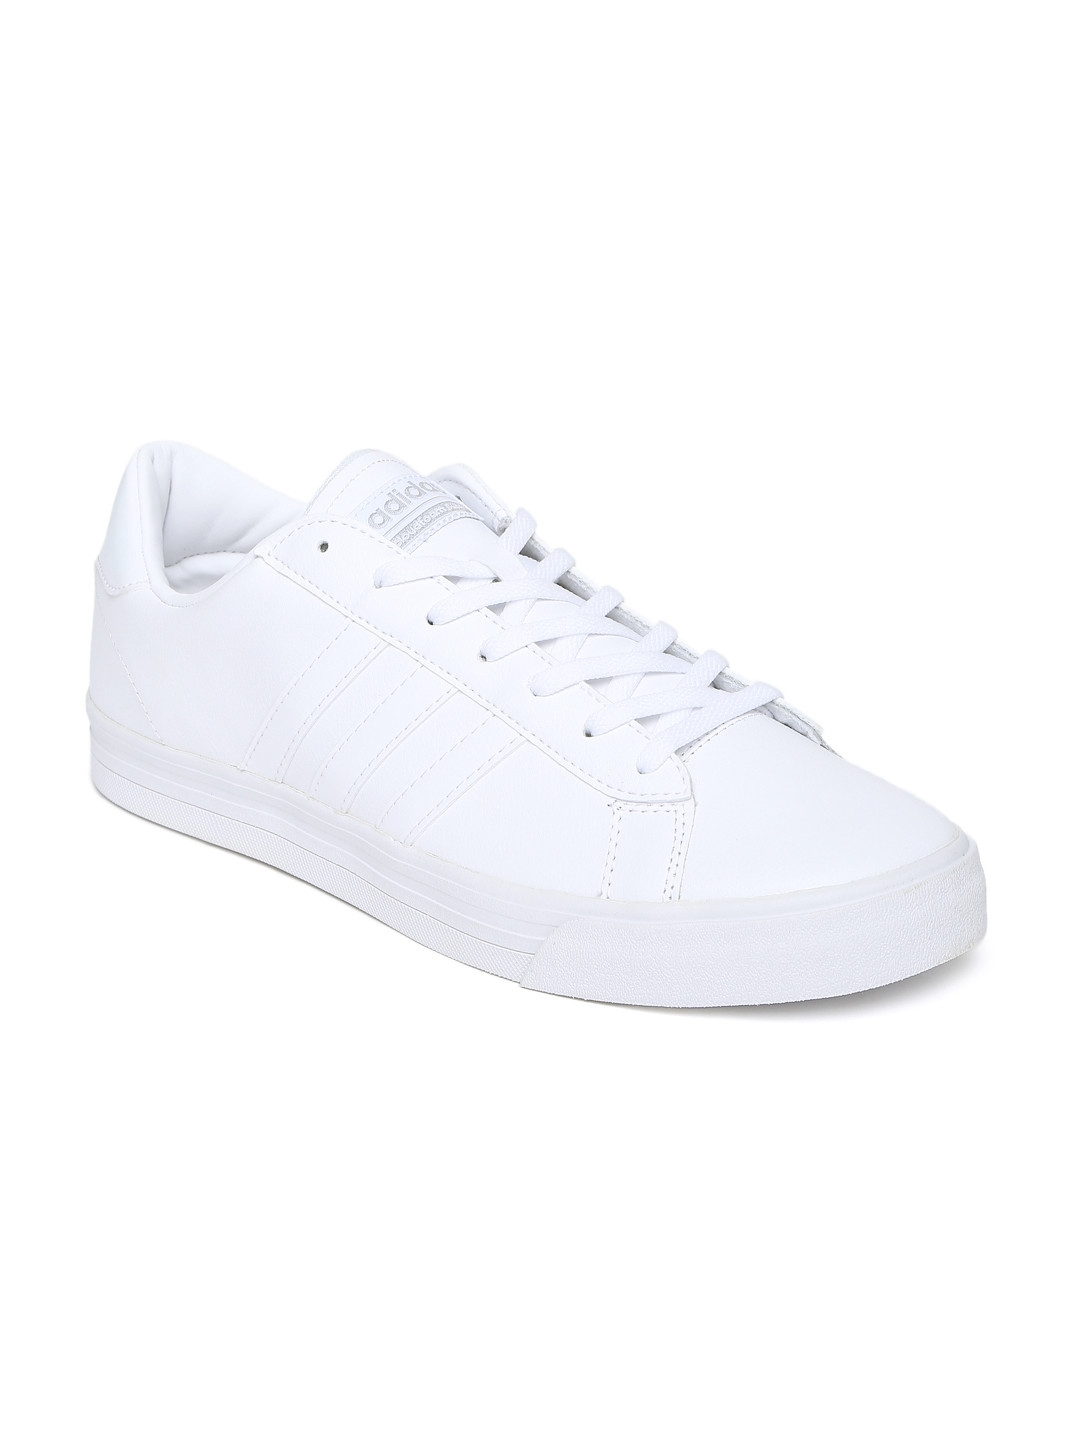 ADIDAS NEO Men White Solid Leather Cloudfoam Super Daily Sneakers 01aace3aa2